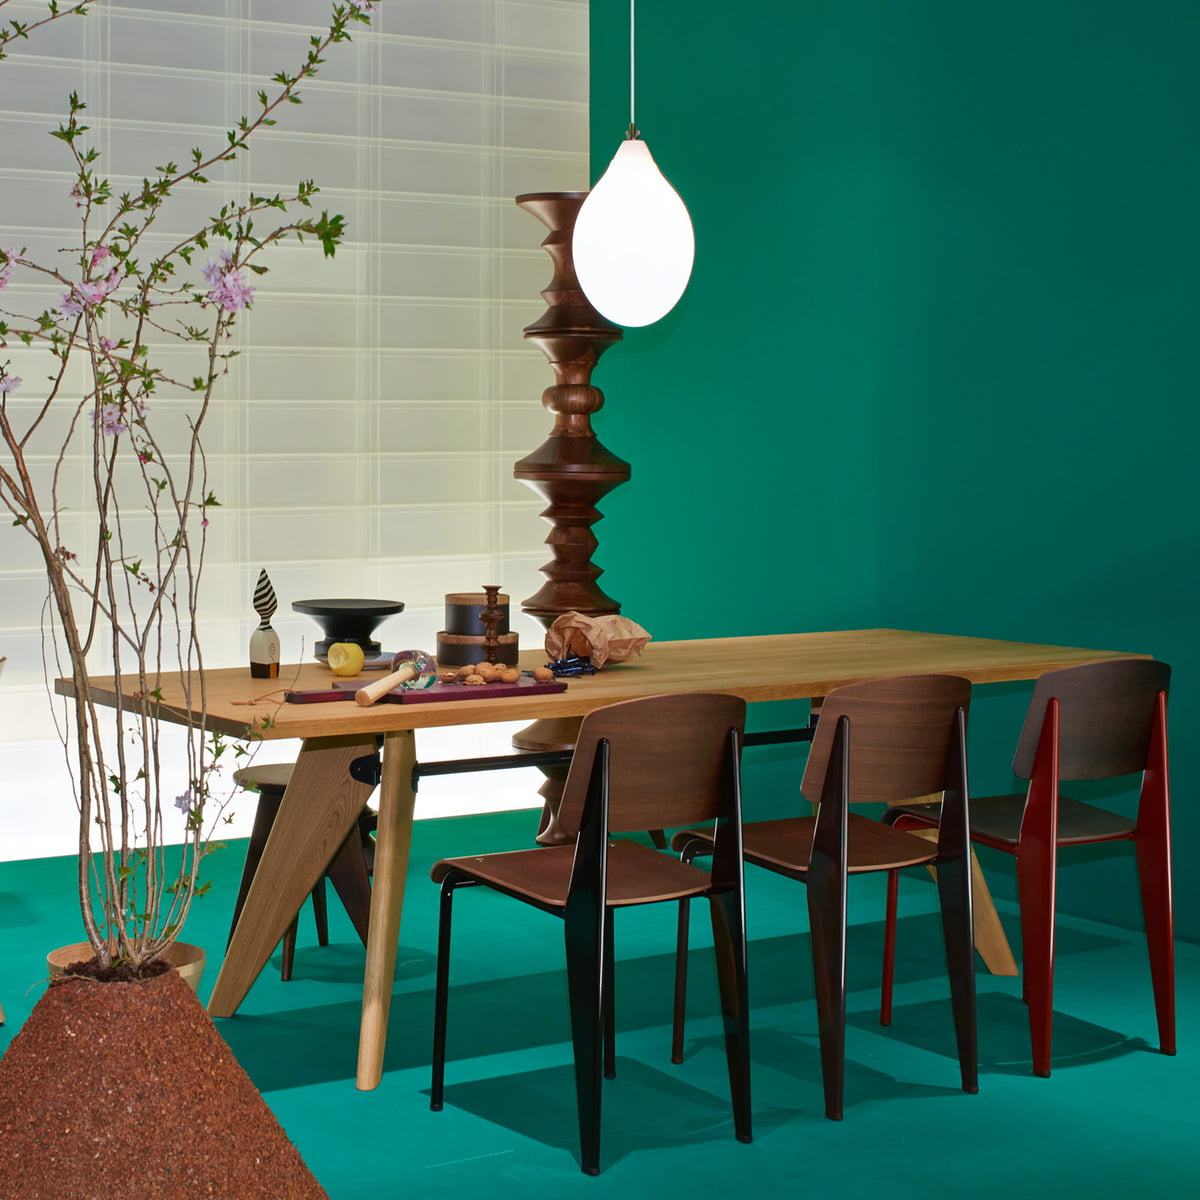 Table Solvay by Vitra in the home design shop : Solvay Table Ambiente 1 from www.connox.com size 1200 x 1200 jpeg 185kB